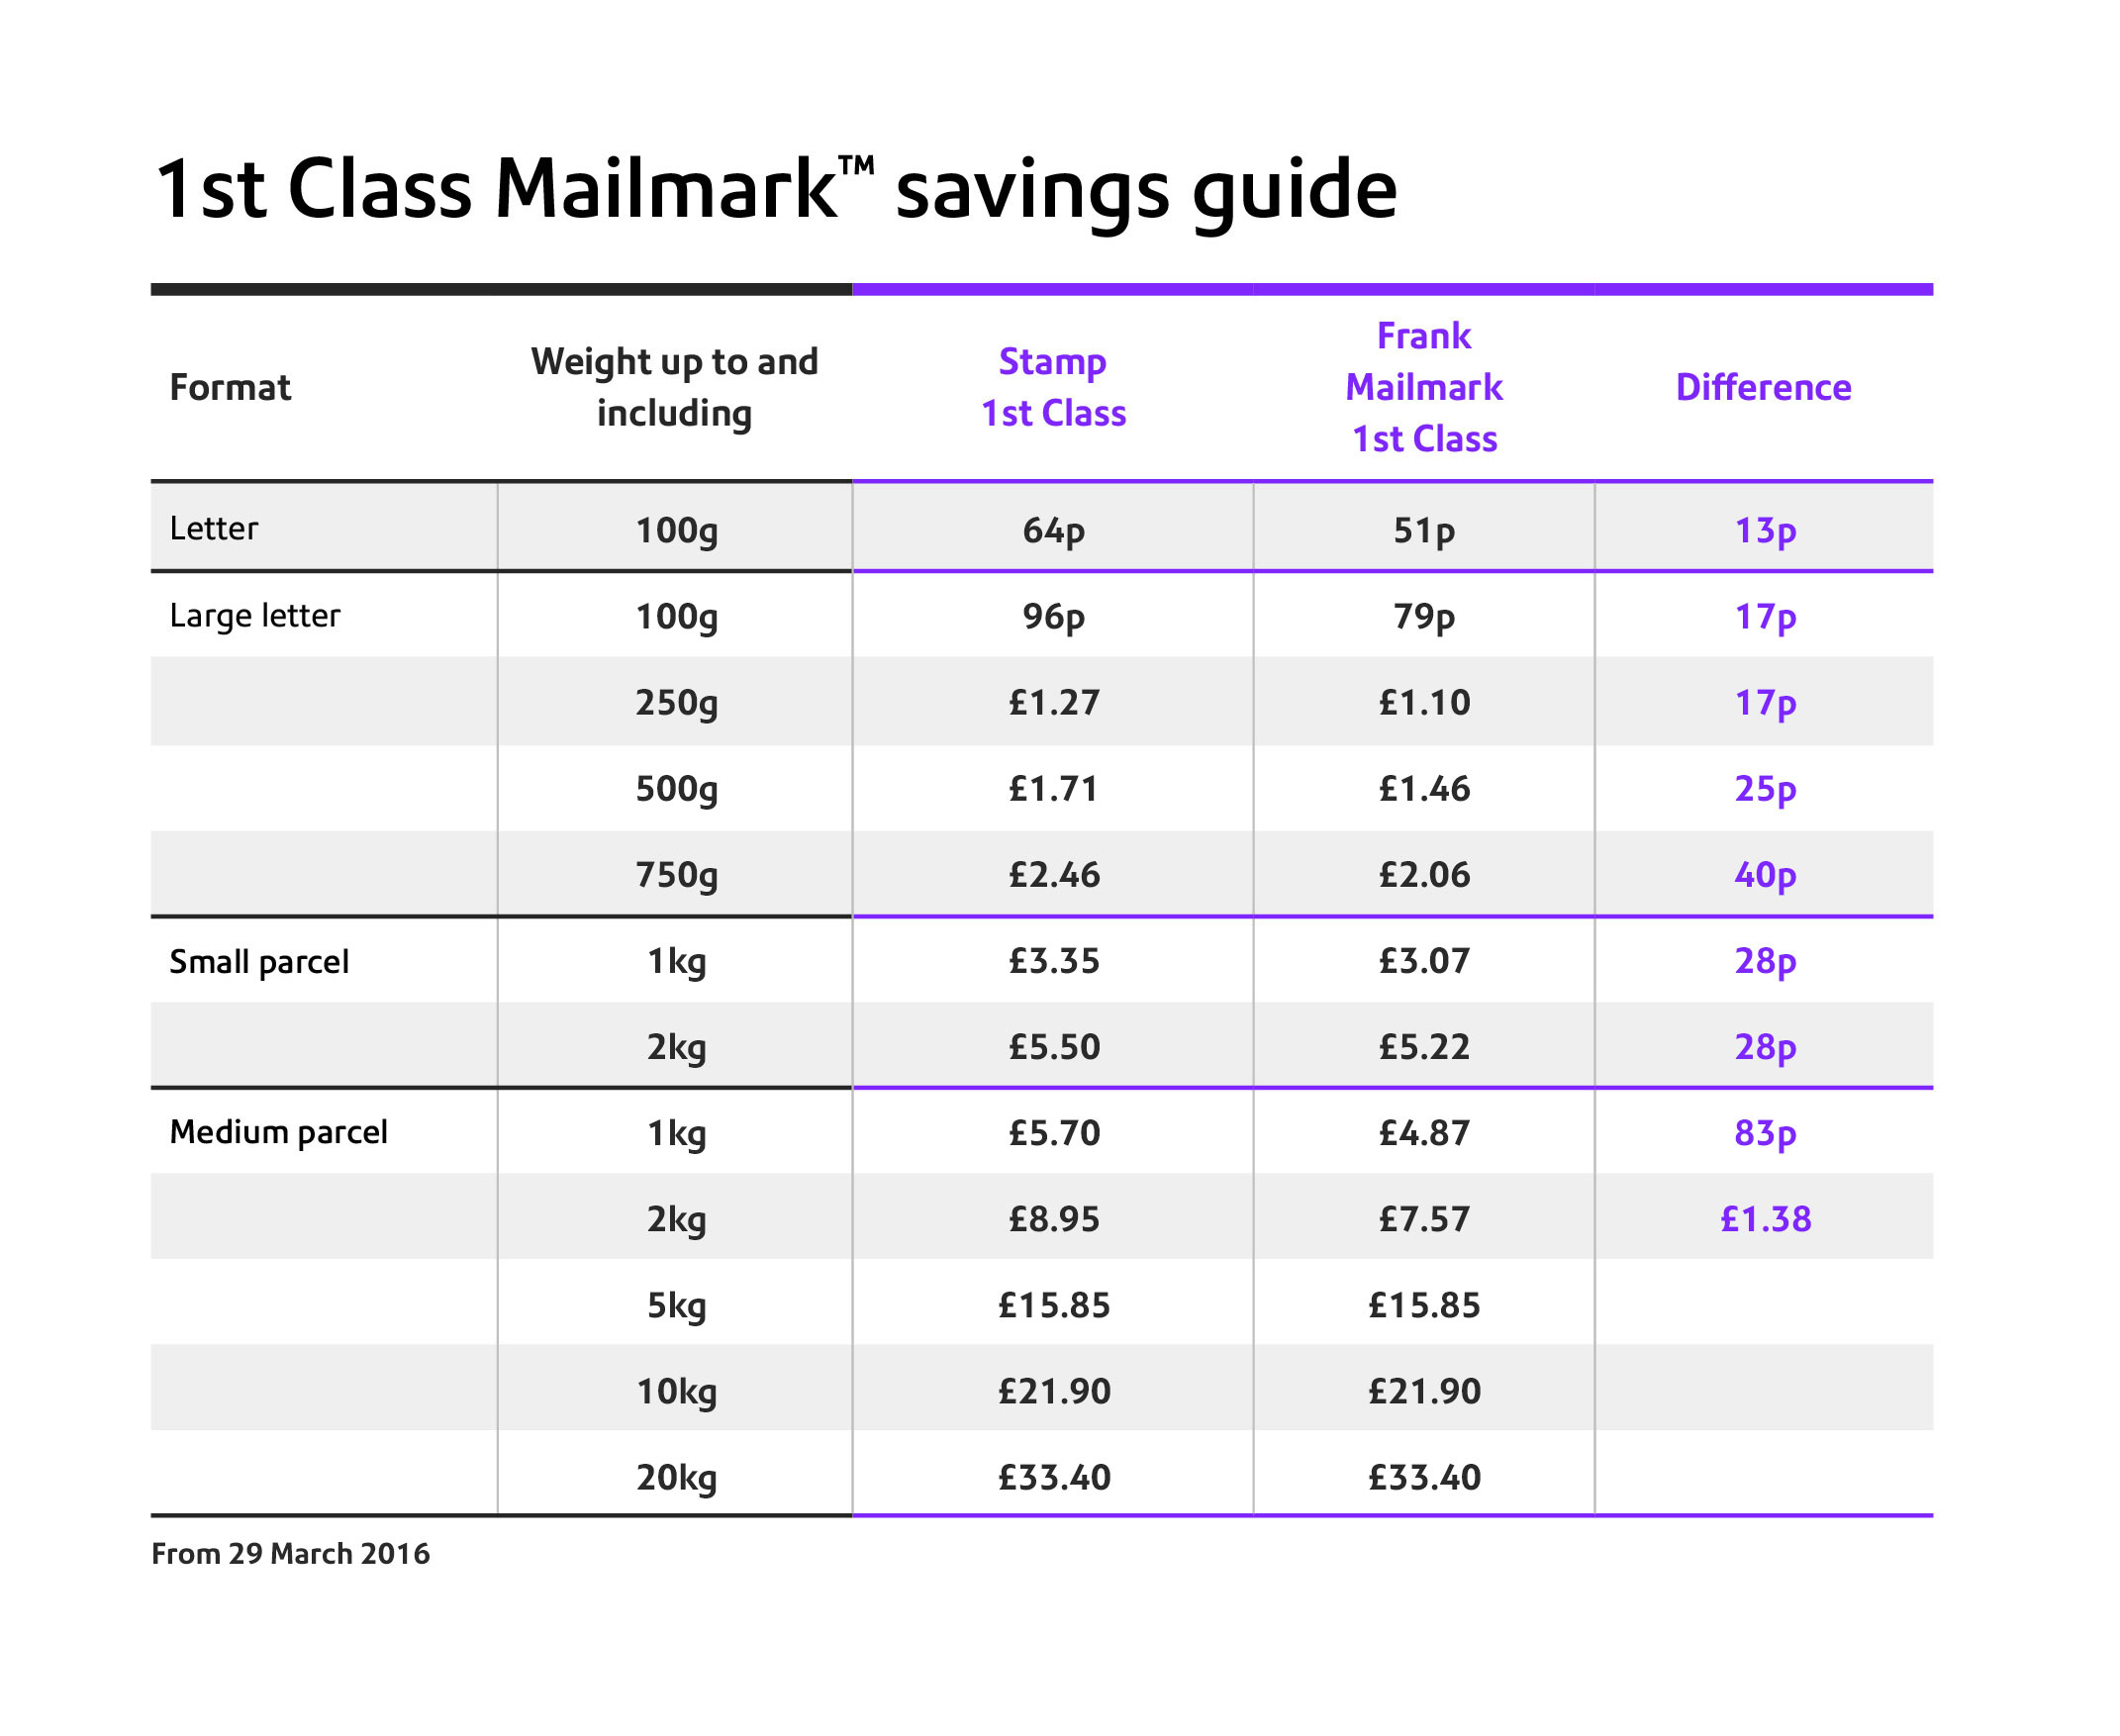 1st class Mailmark savings guide